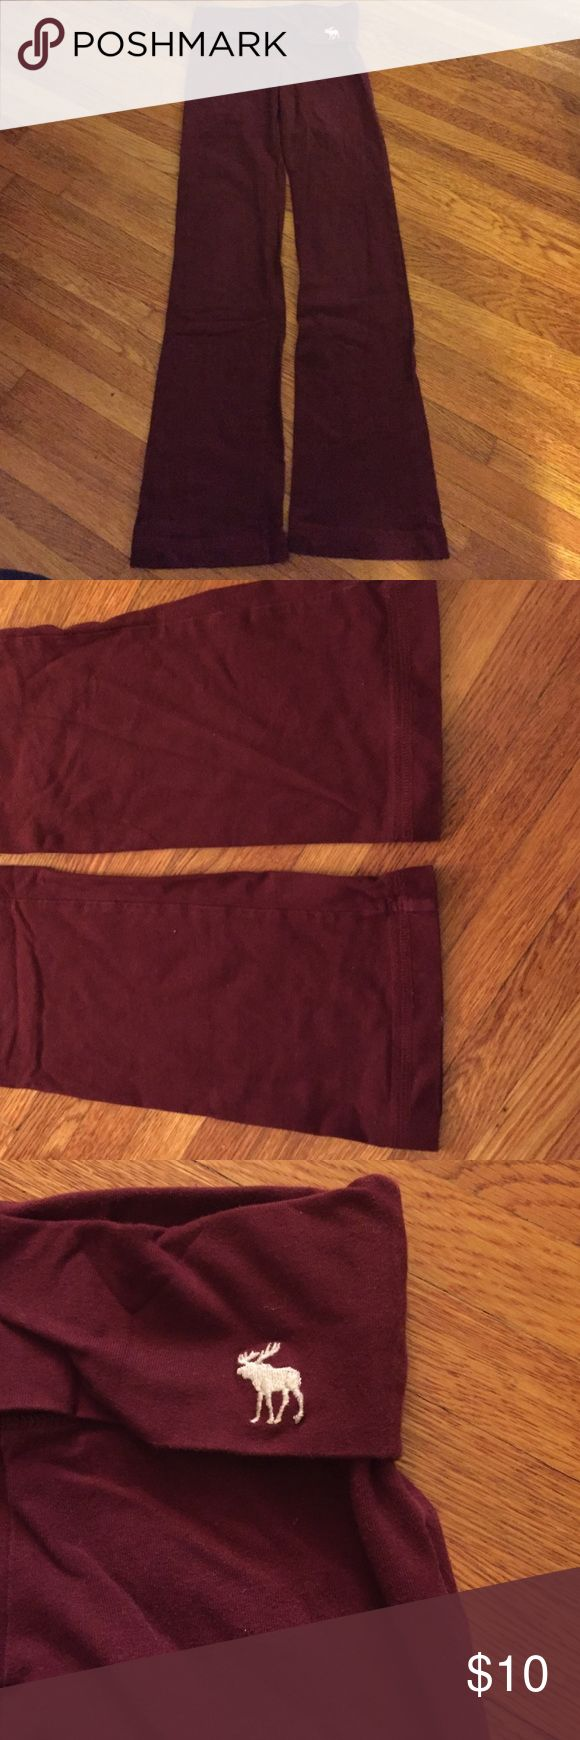 Abercrombie & Fitch maroon yoga pants children's M Abercrombie and Fitch maroon yoga pants boot cut sz children girls medium (10/12). Fold over waistband with moose on front left waistband and Abercrombie on the back. Great condition! Abercrombie & Fitch Bottoms